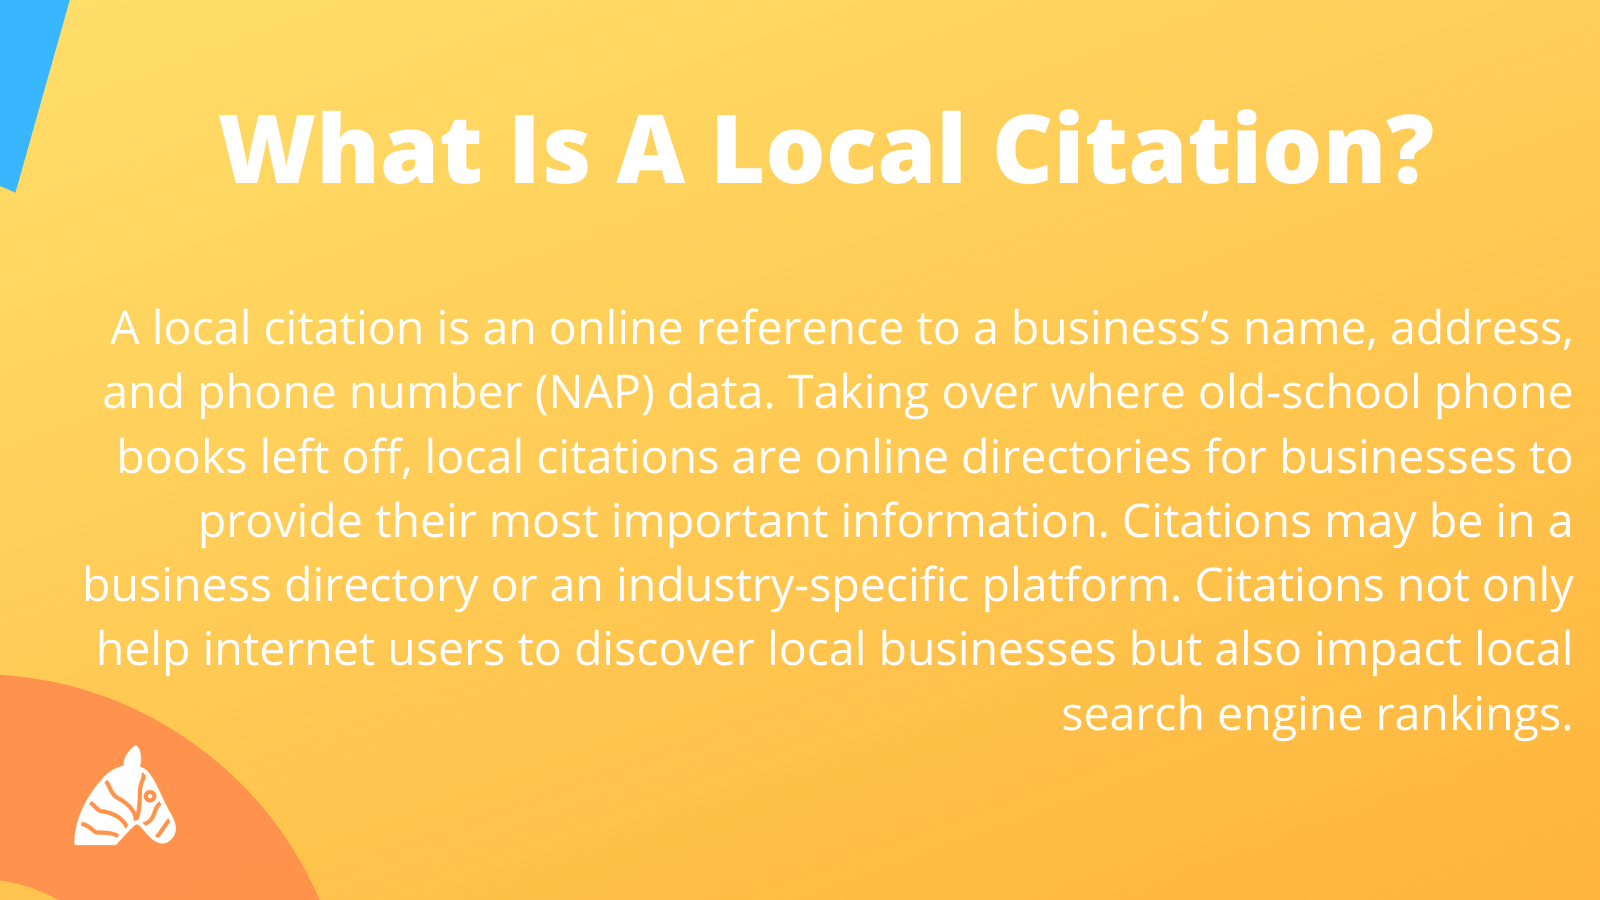 explanation of a local citation or NAP listing